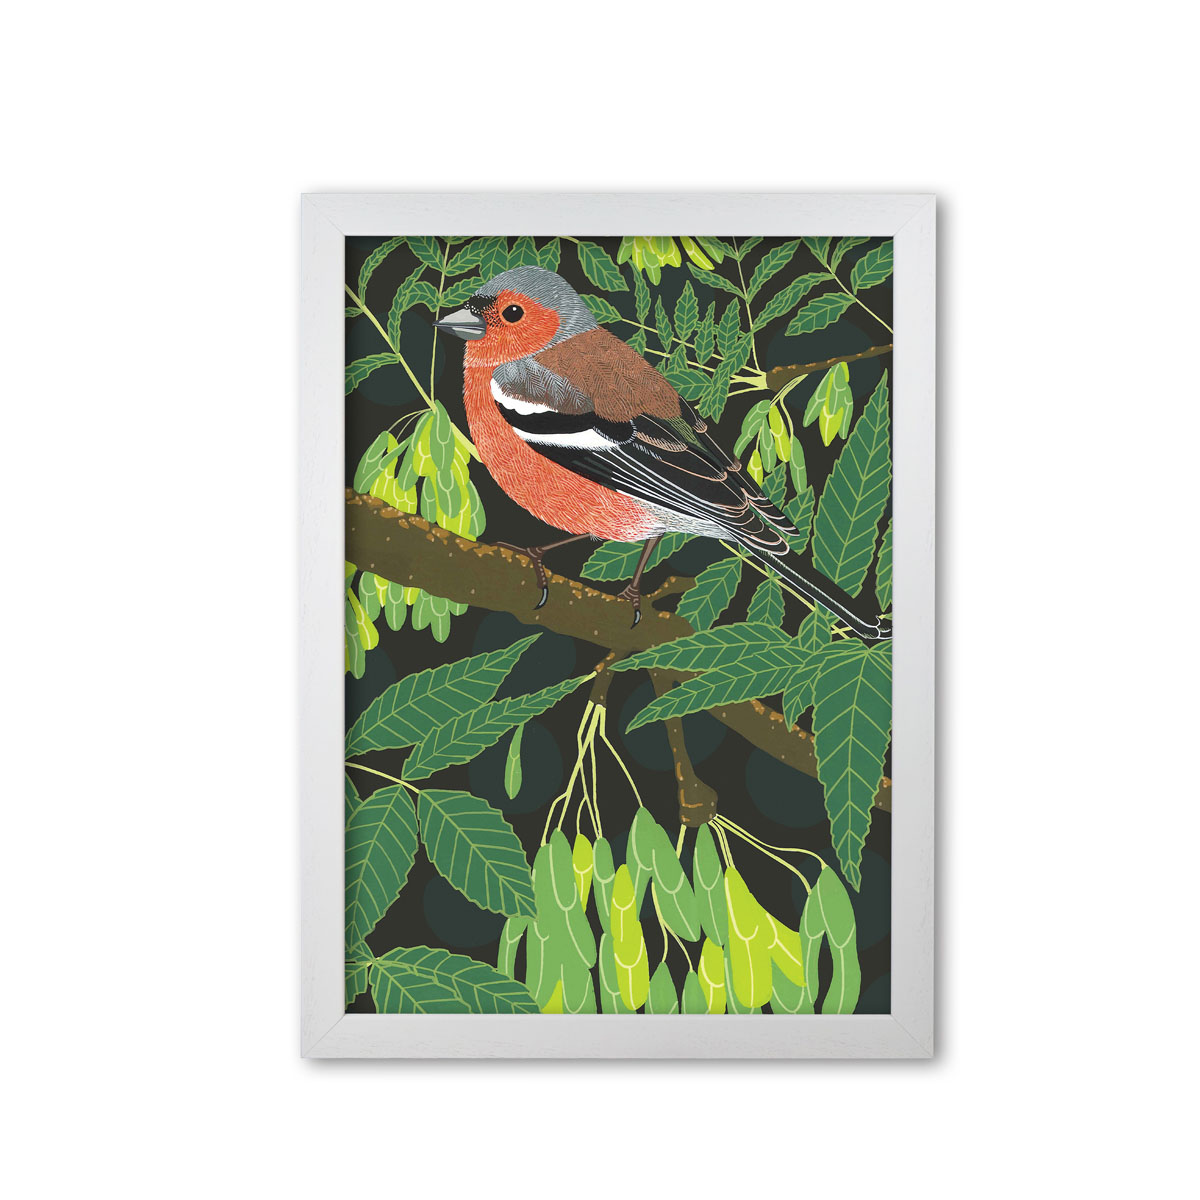 Chaffinch Garden Bird Mounted And Framed Print